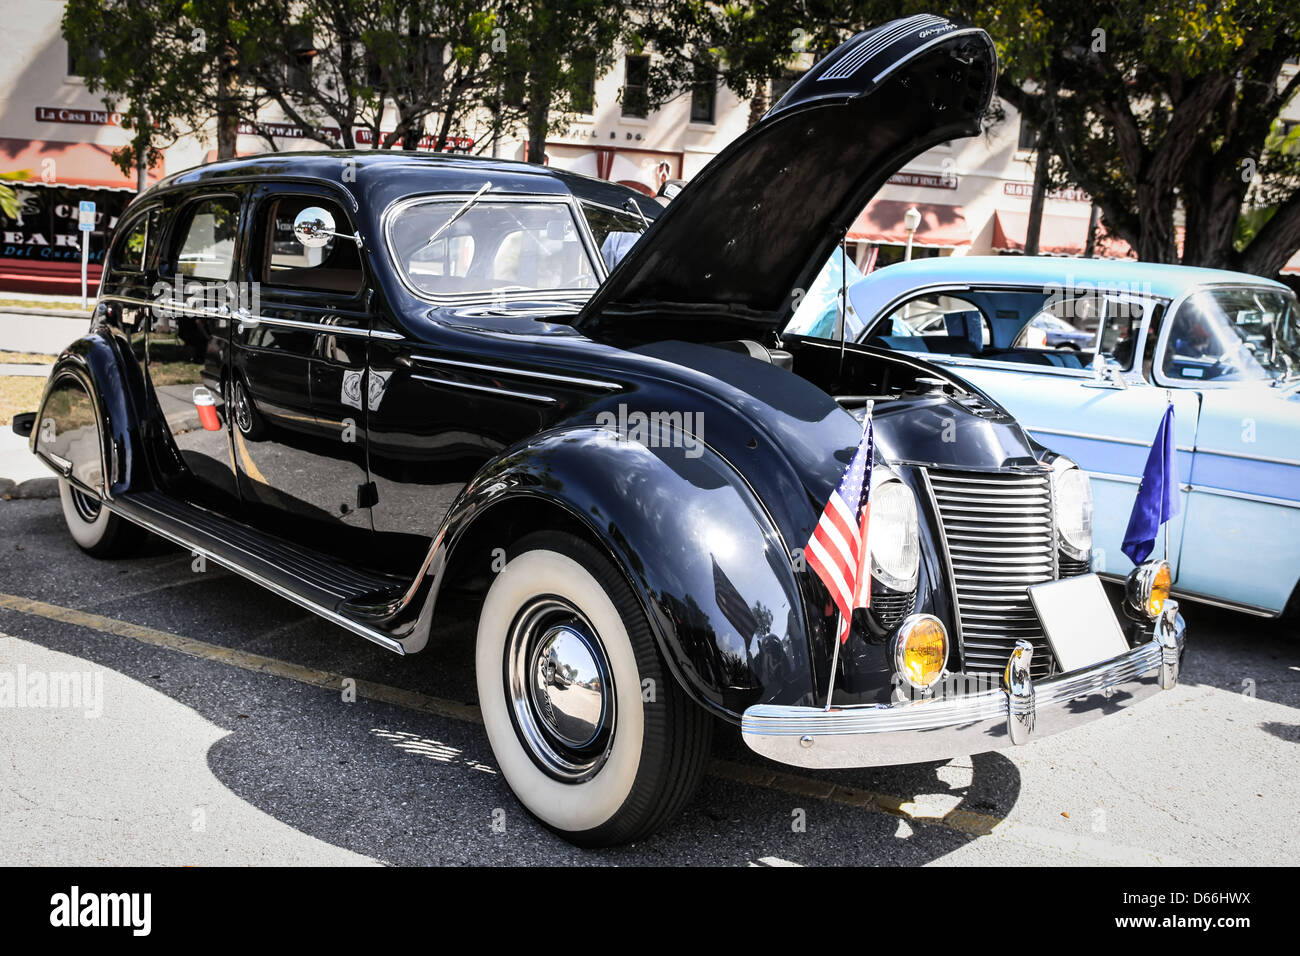 1937 Chrysler Airflow 4 Door Sedan American Classic Car Stock